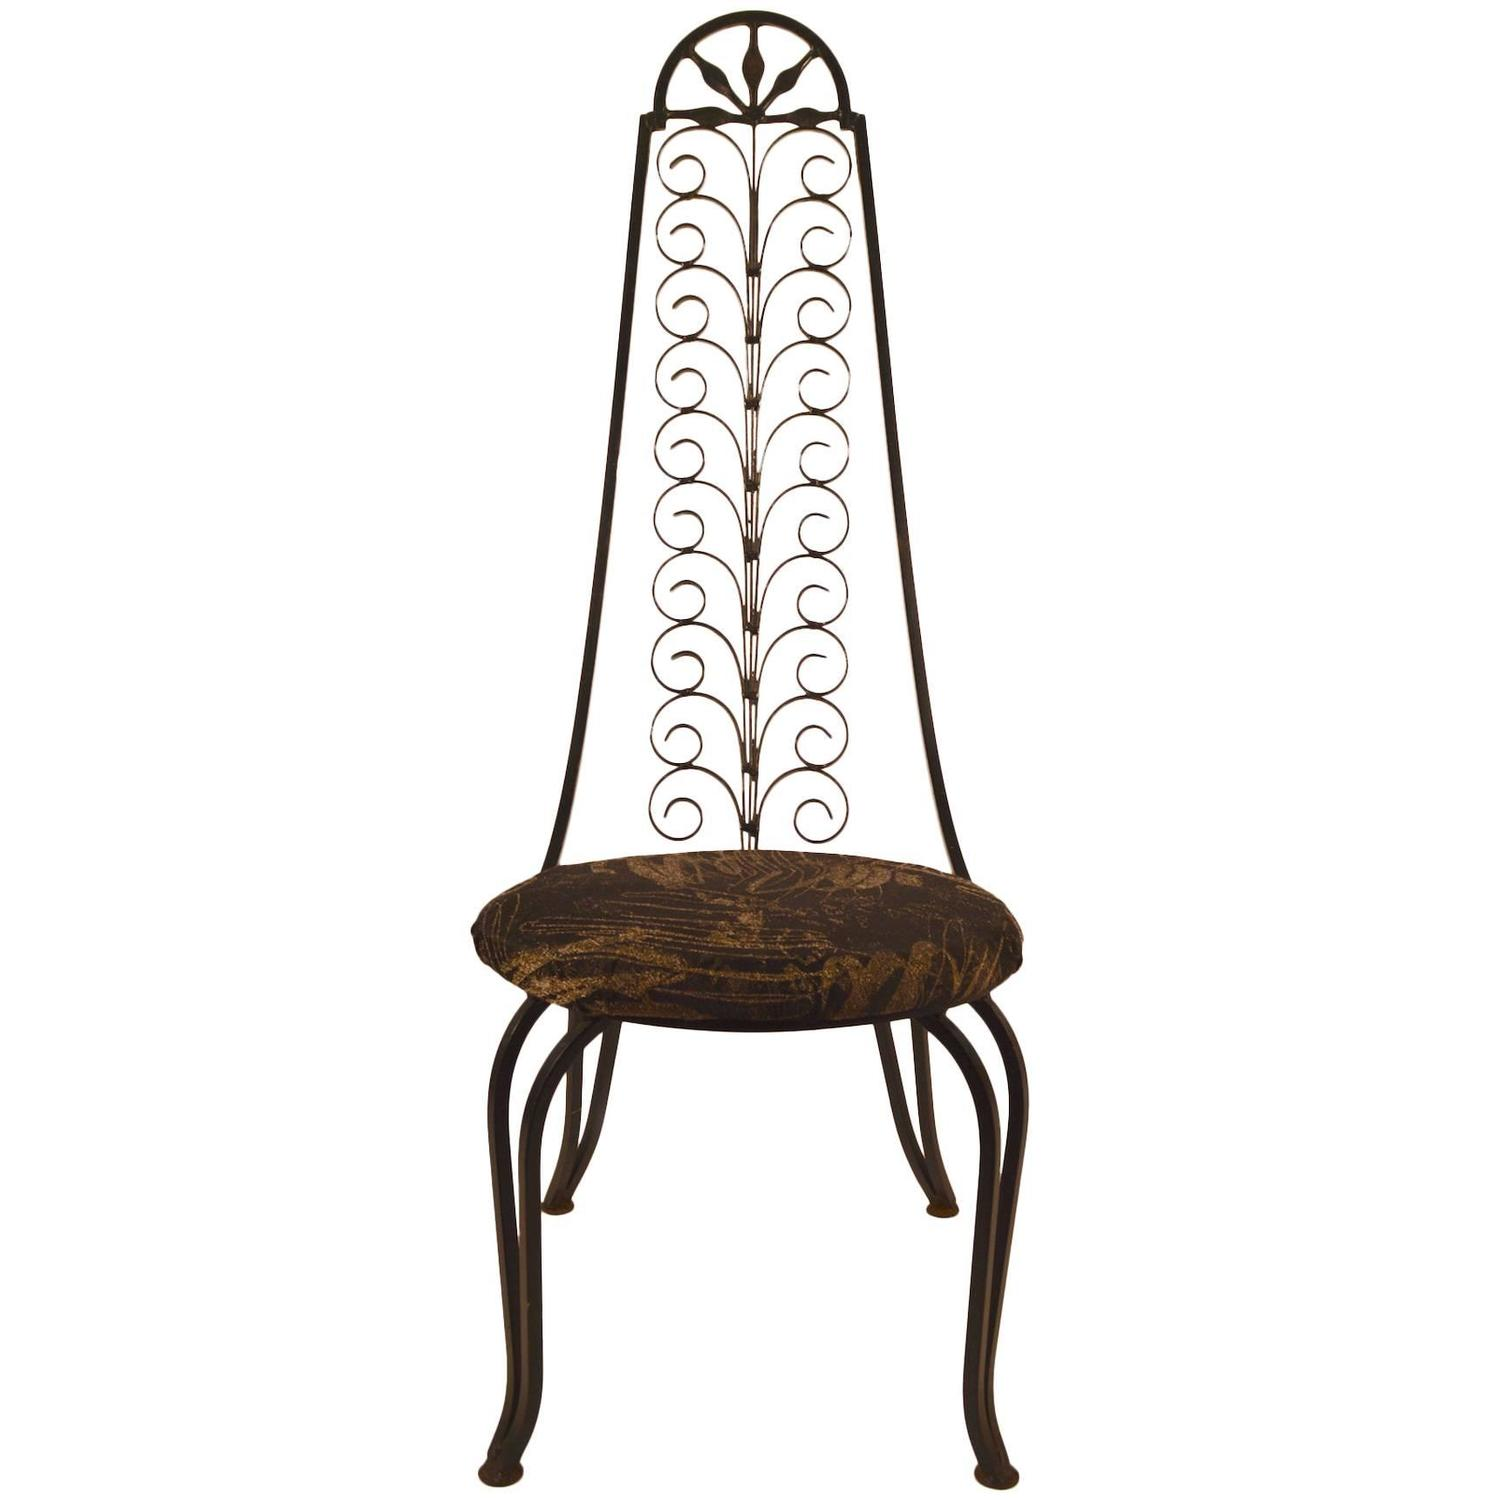 wrought iron chair padded beach stylish after umanoff for sale at 1stdibs